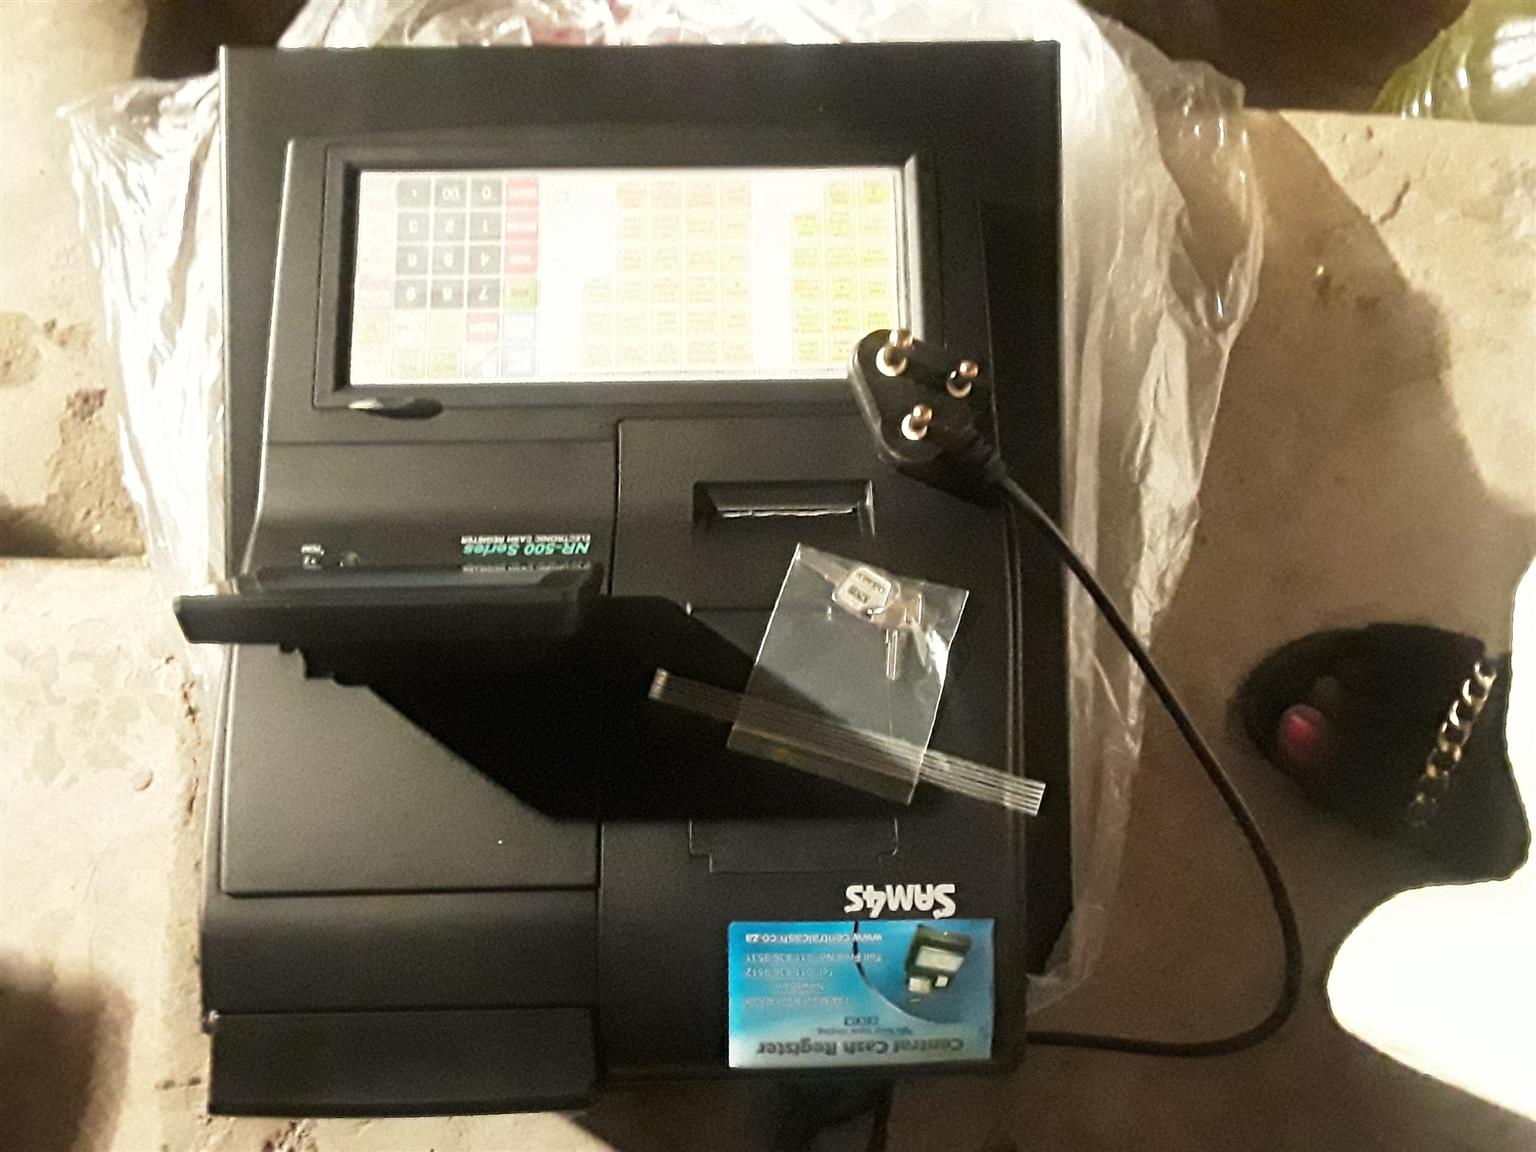 SAM4S ELECTRONIC CASH REGISTER, NR-510B, BRAND NEW NEVER BEEN USED X2D.